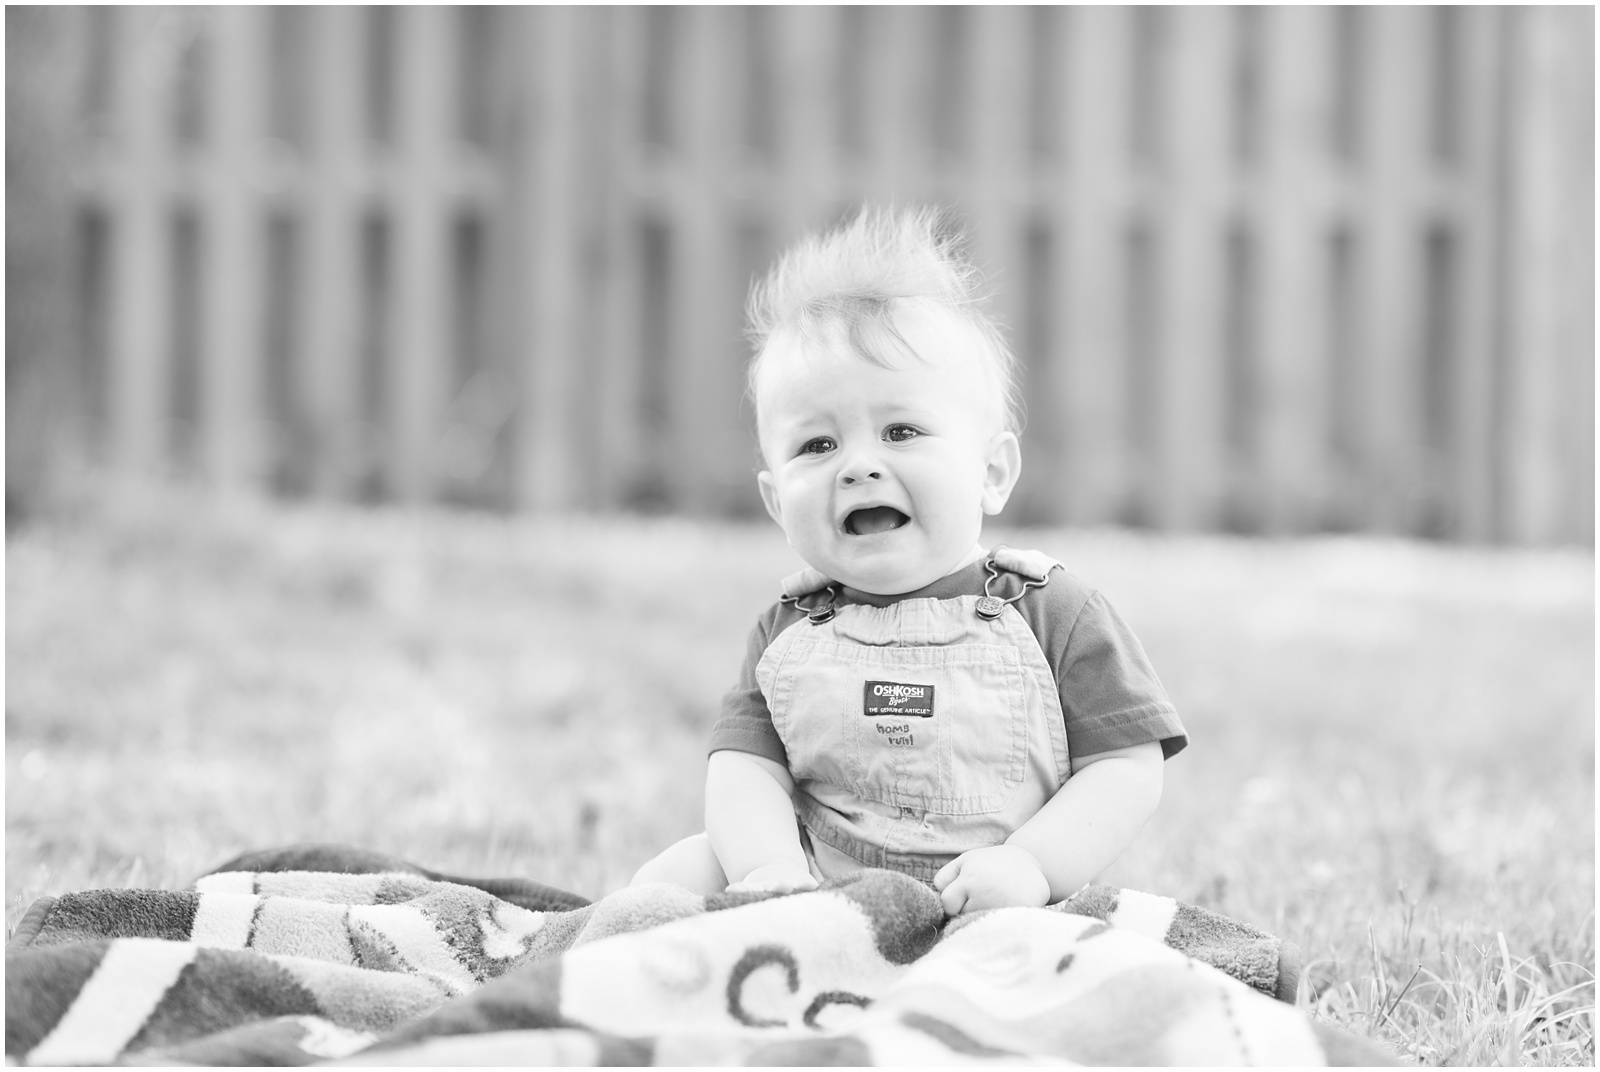 Baby_Portraits_9 Months_Family_Siblings_Growing Up_7.jpg